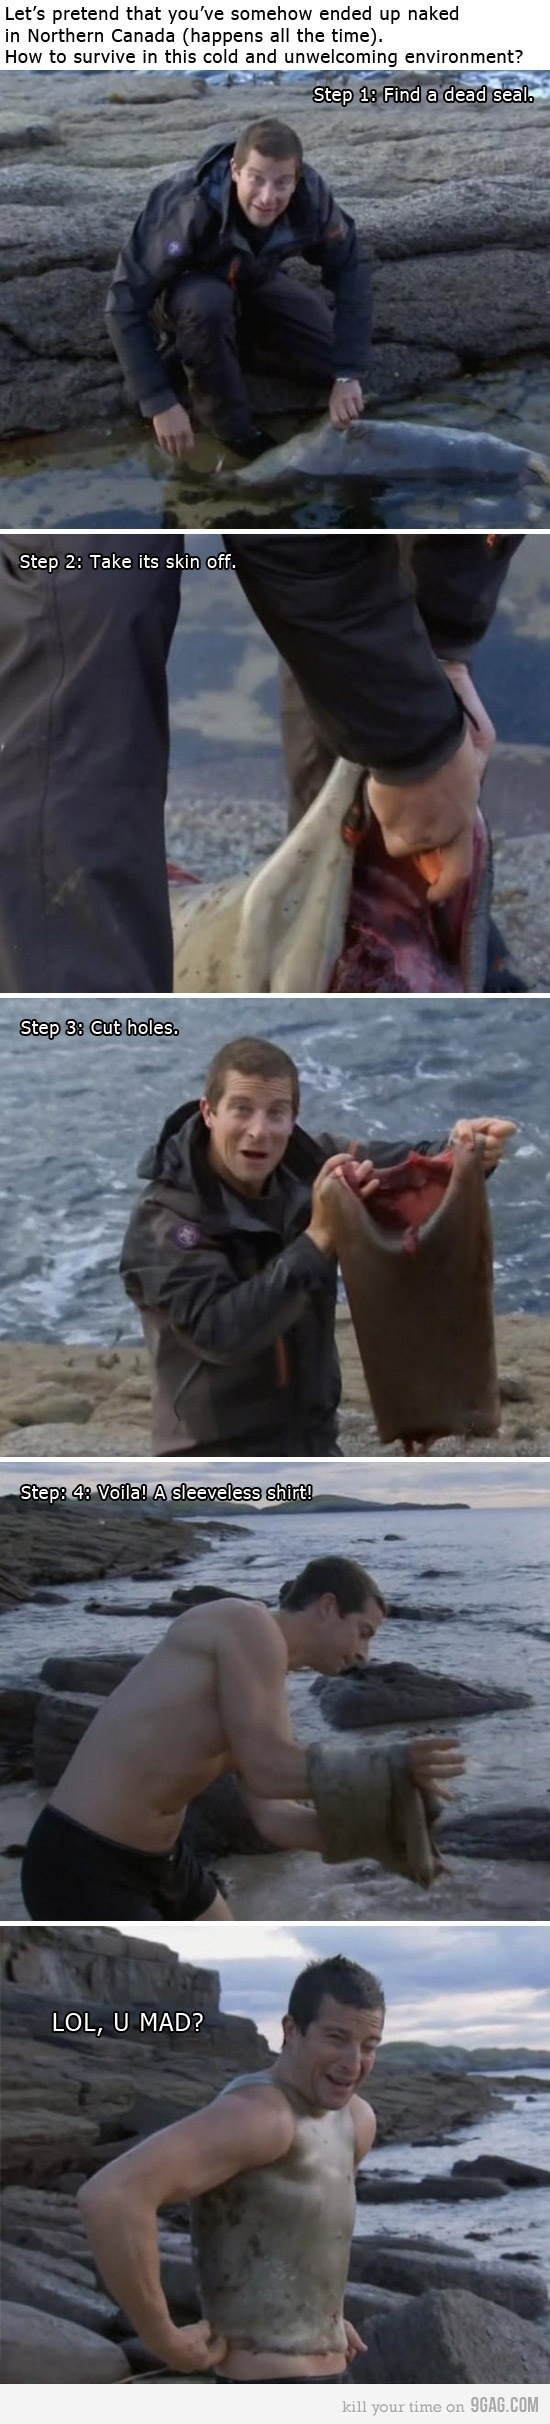 86037 700b v1 A Bear Grylls guide to surviving a cold and unwelcoming environment